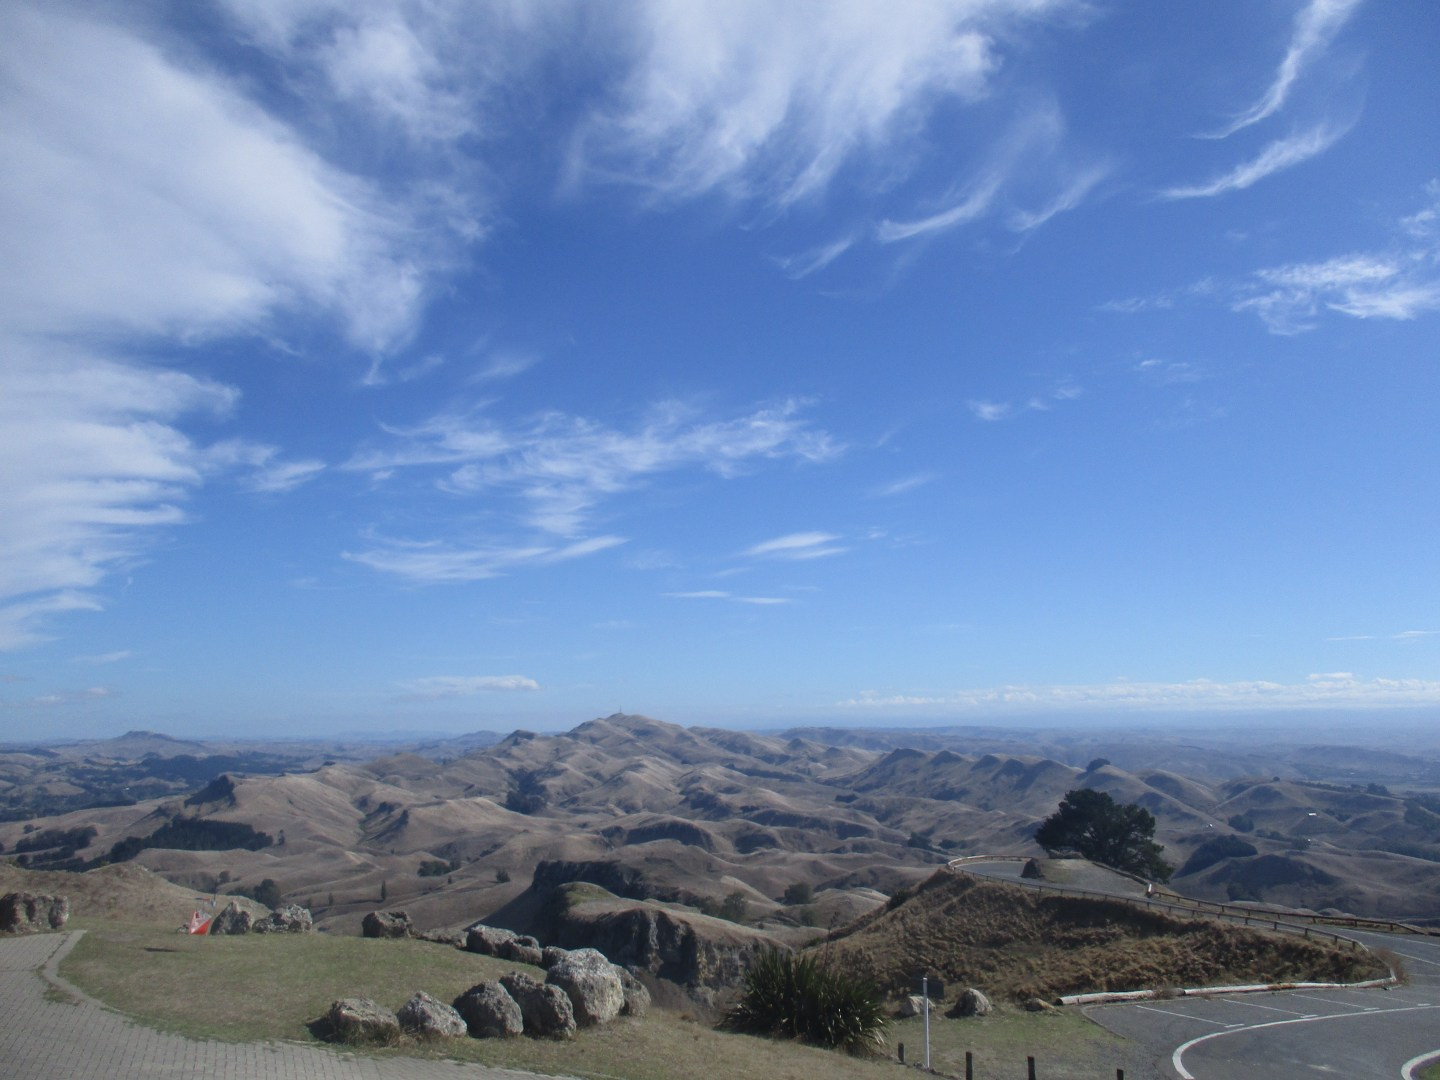 Rolling hills with a winding road going through them on a sunny day in Hastings New Zealand